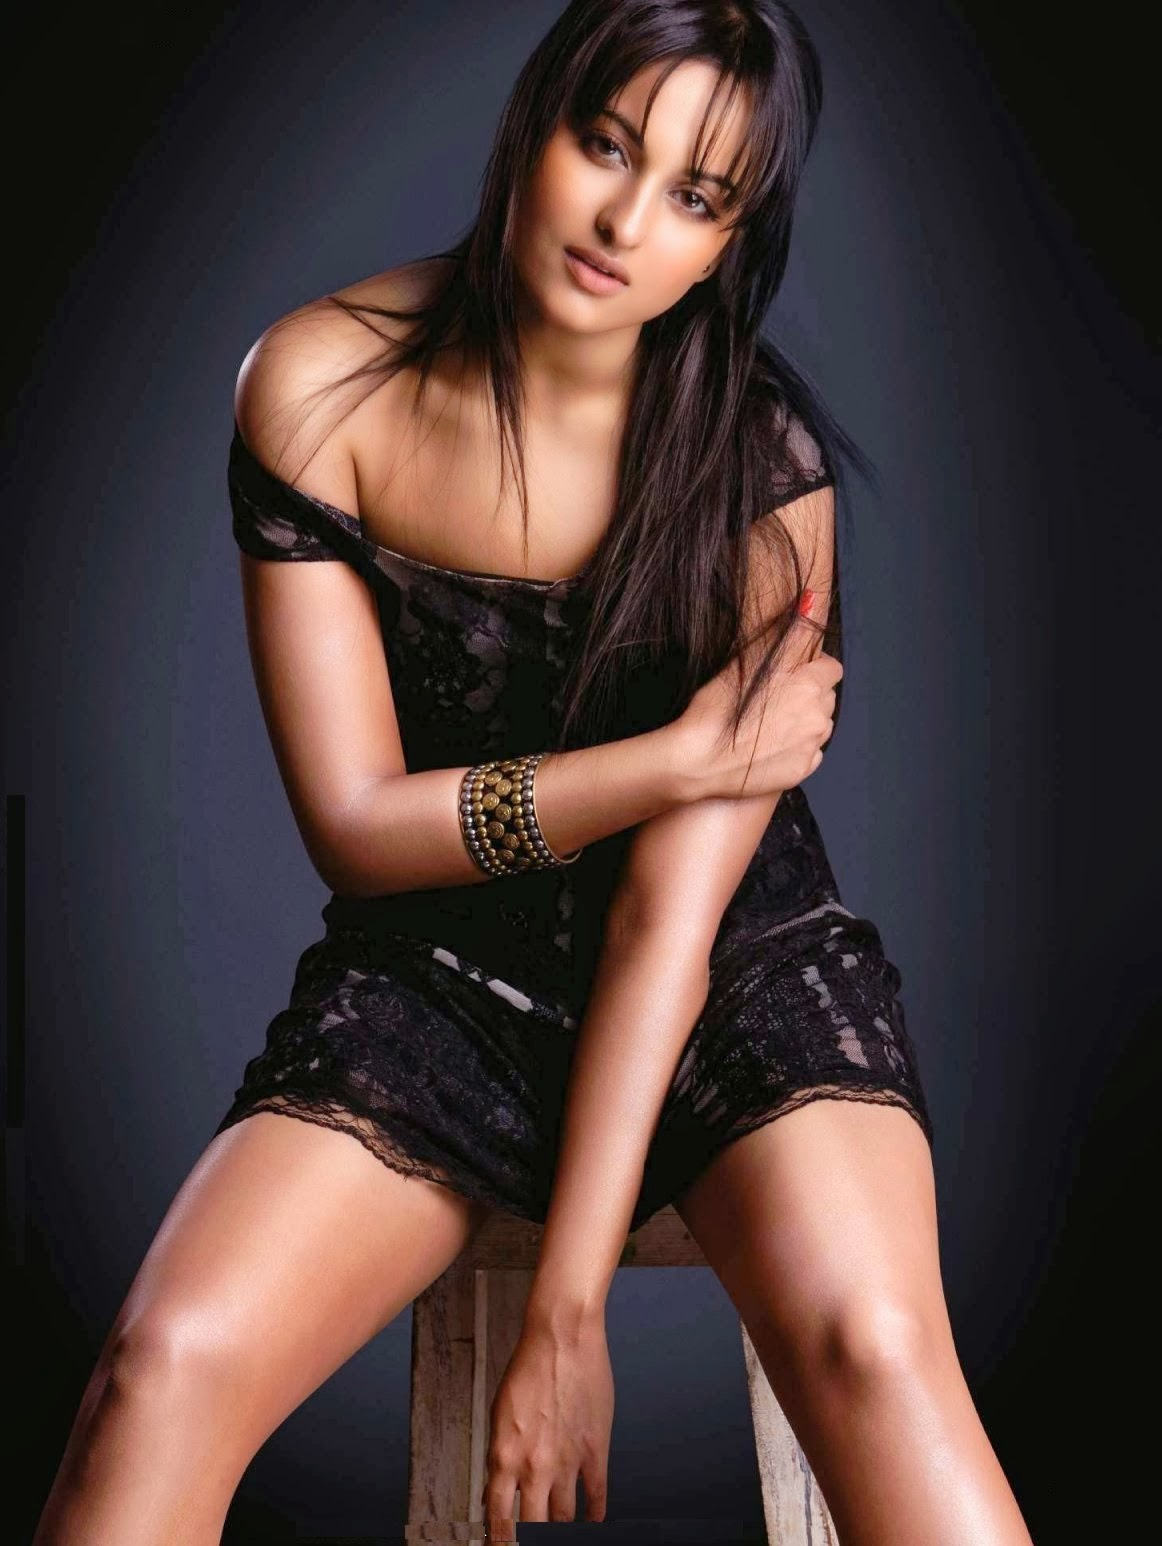 Free Download Full Hd Hot Wallpapers Bollywood Actress -8416